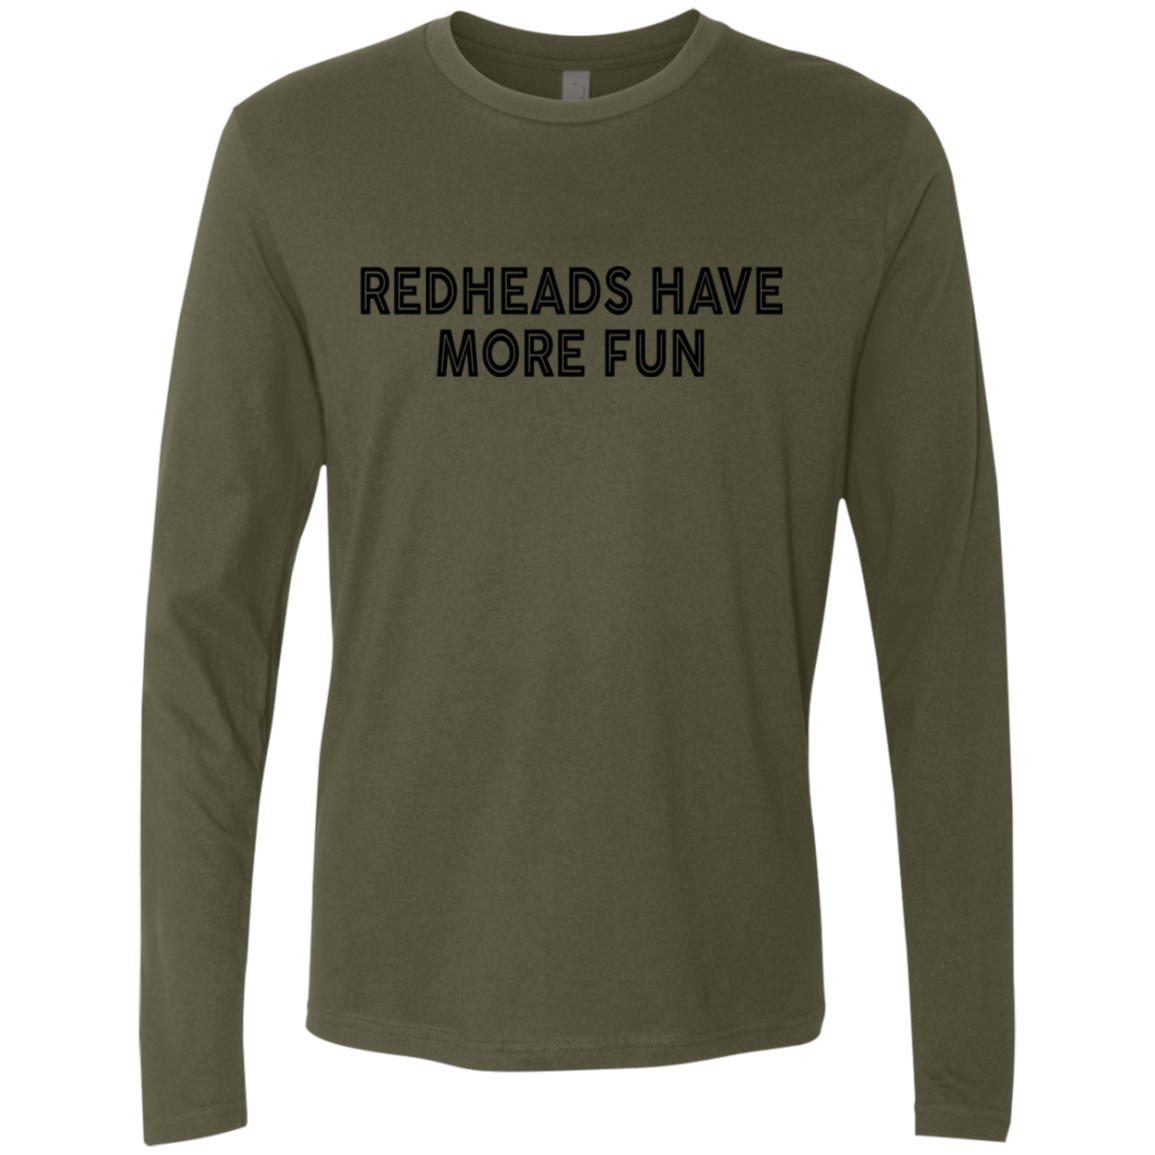 Redheads Have More Fun Men's Long Sleeve Tee